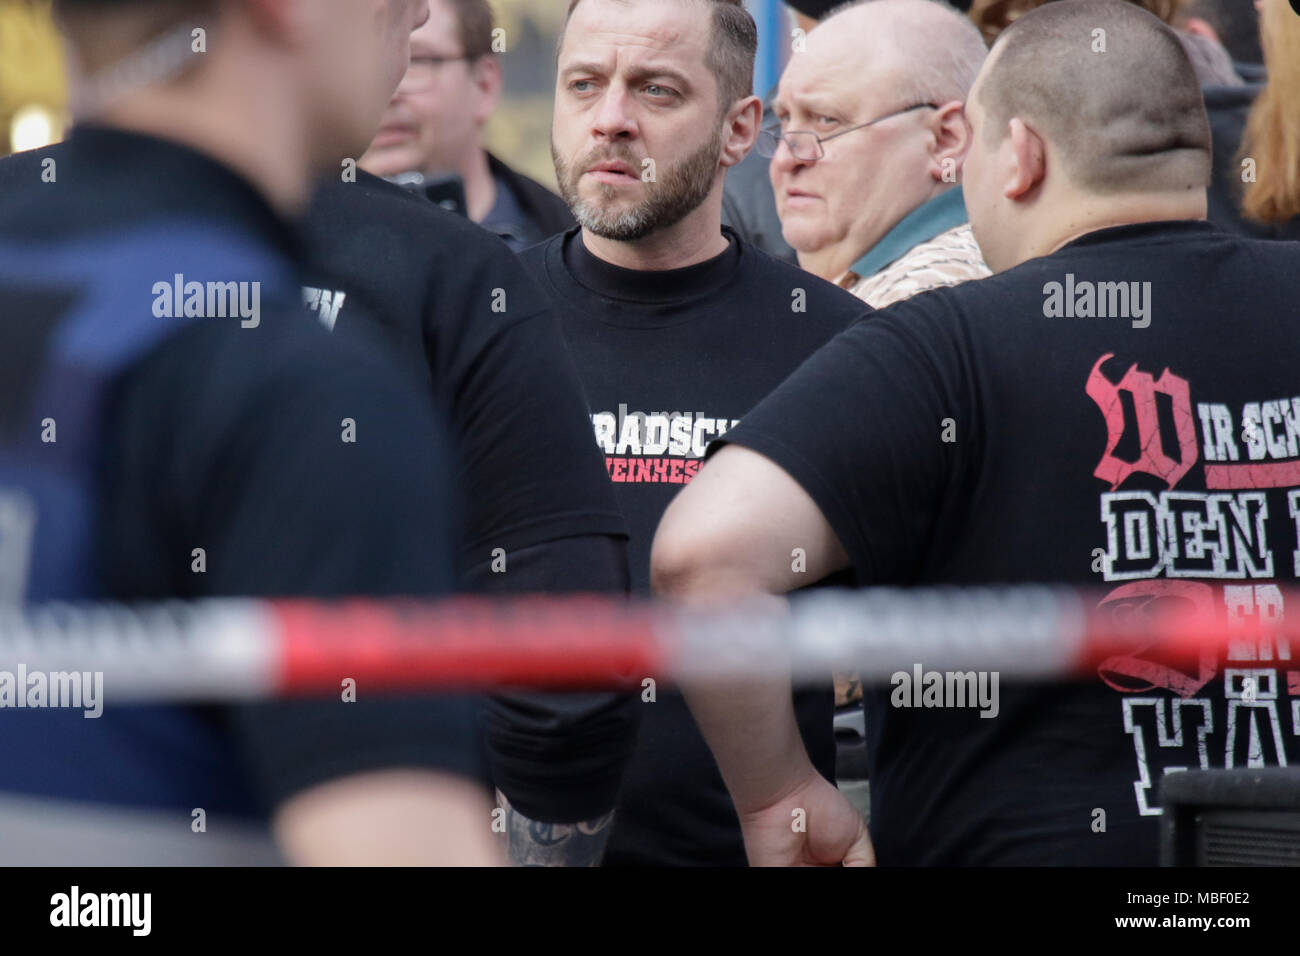 Mainz, Germany. 09th Apr, 2018. Members of the right-wing Kameradschaft Rheinhessen (comradeship Rhine-Hesse) can be seen at the protest, wearing t-shirts that read 'We swear the oath that lasts forever'. Around 50 right-wing protesters rallied in the city centre of Mainz, to protest against the German government, for the closing of the borders and against refugees under the slogan 'Merkel has to go'. They were heckled by around 400 counter-protesters. Credit: Michael Debets/Pacific Press/Alamy Live News - Stock Image